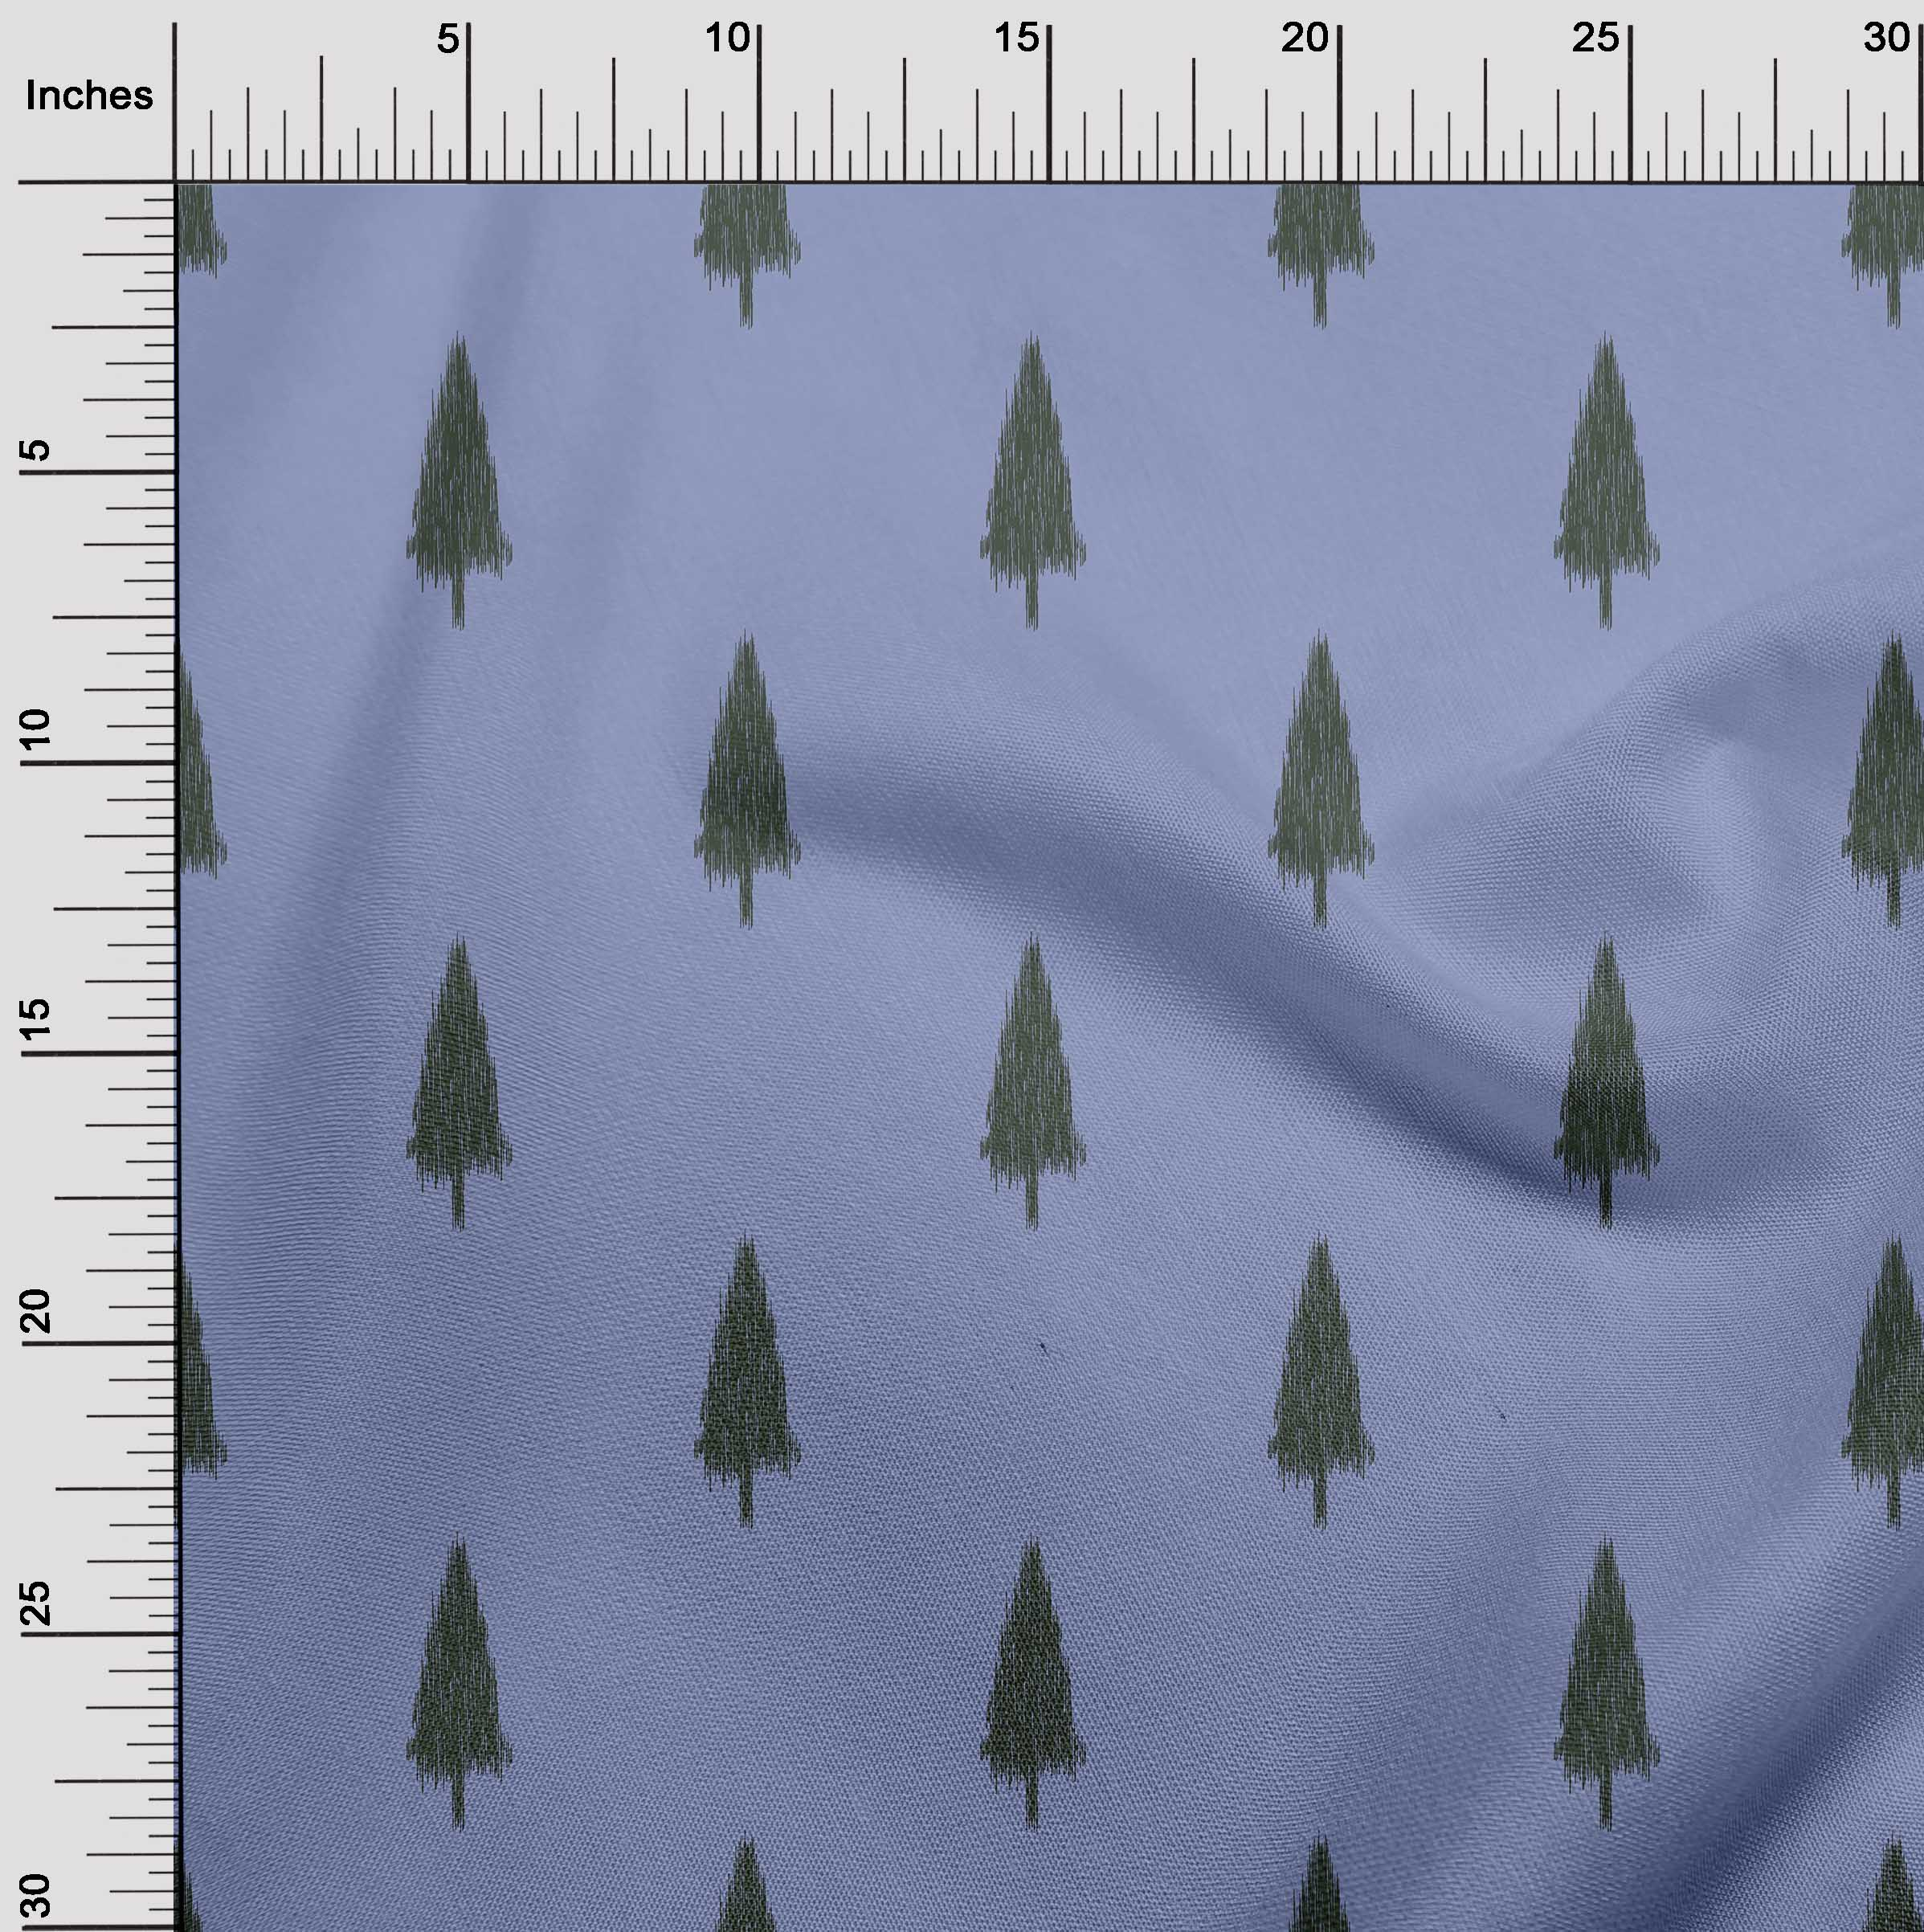 oneOone-Baum-Ikat-Printed-Craft-Fabric-By-The-Meter-IK-1177A-5 Indexbild 18